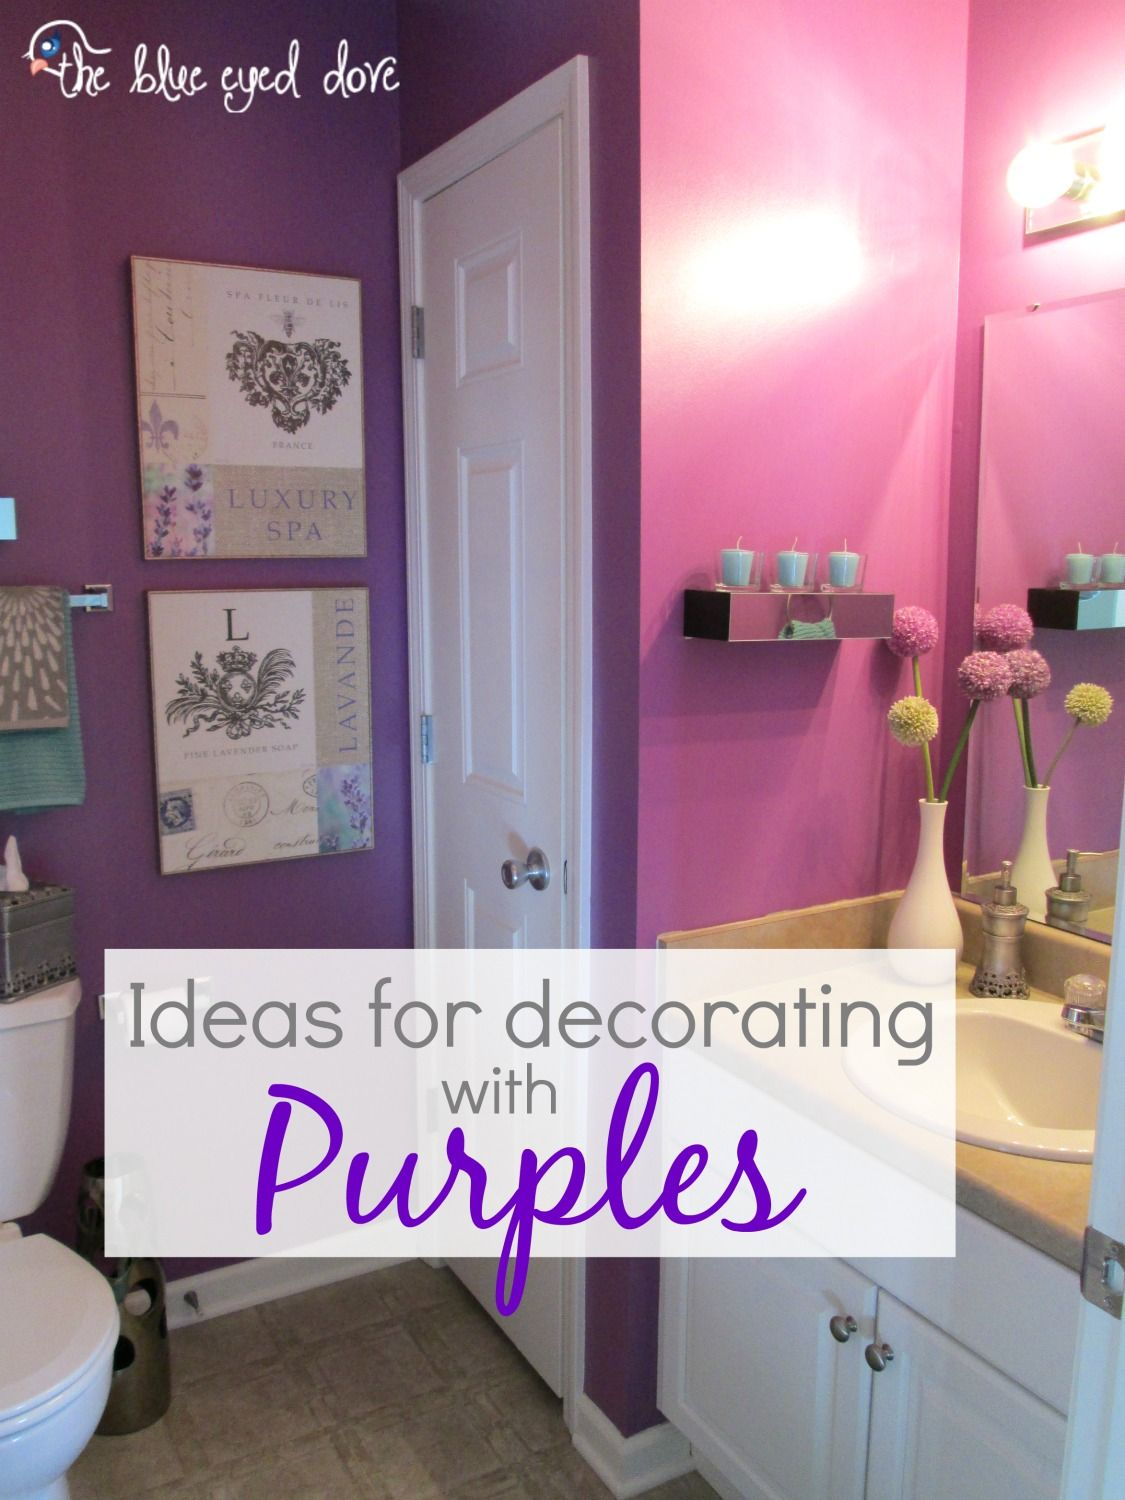 Easy ways to decorate with purples for your home décor! theblueeyeddove.com